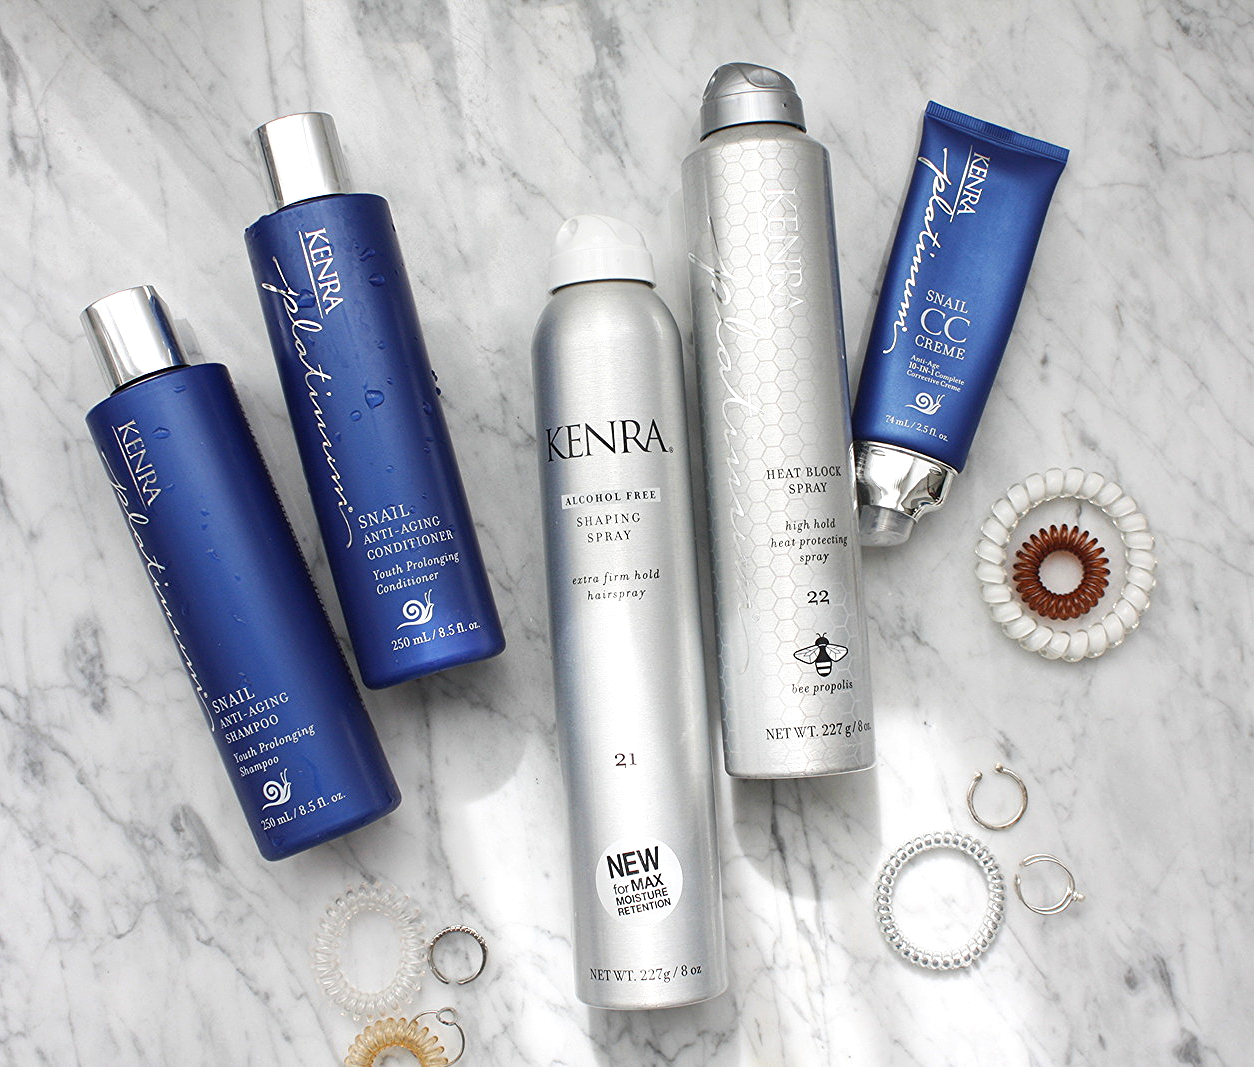 KENRA PROFESSIONAL LAUNCHES NEW LINE